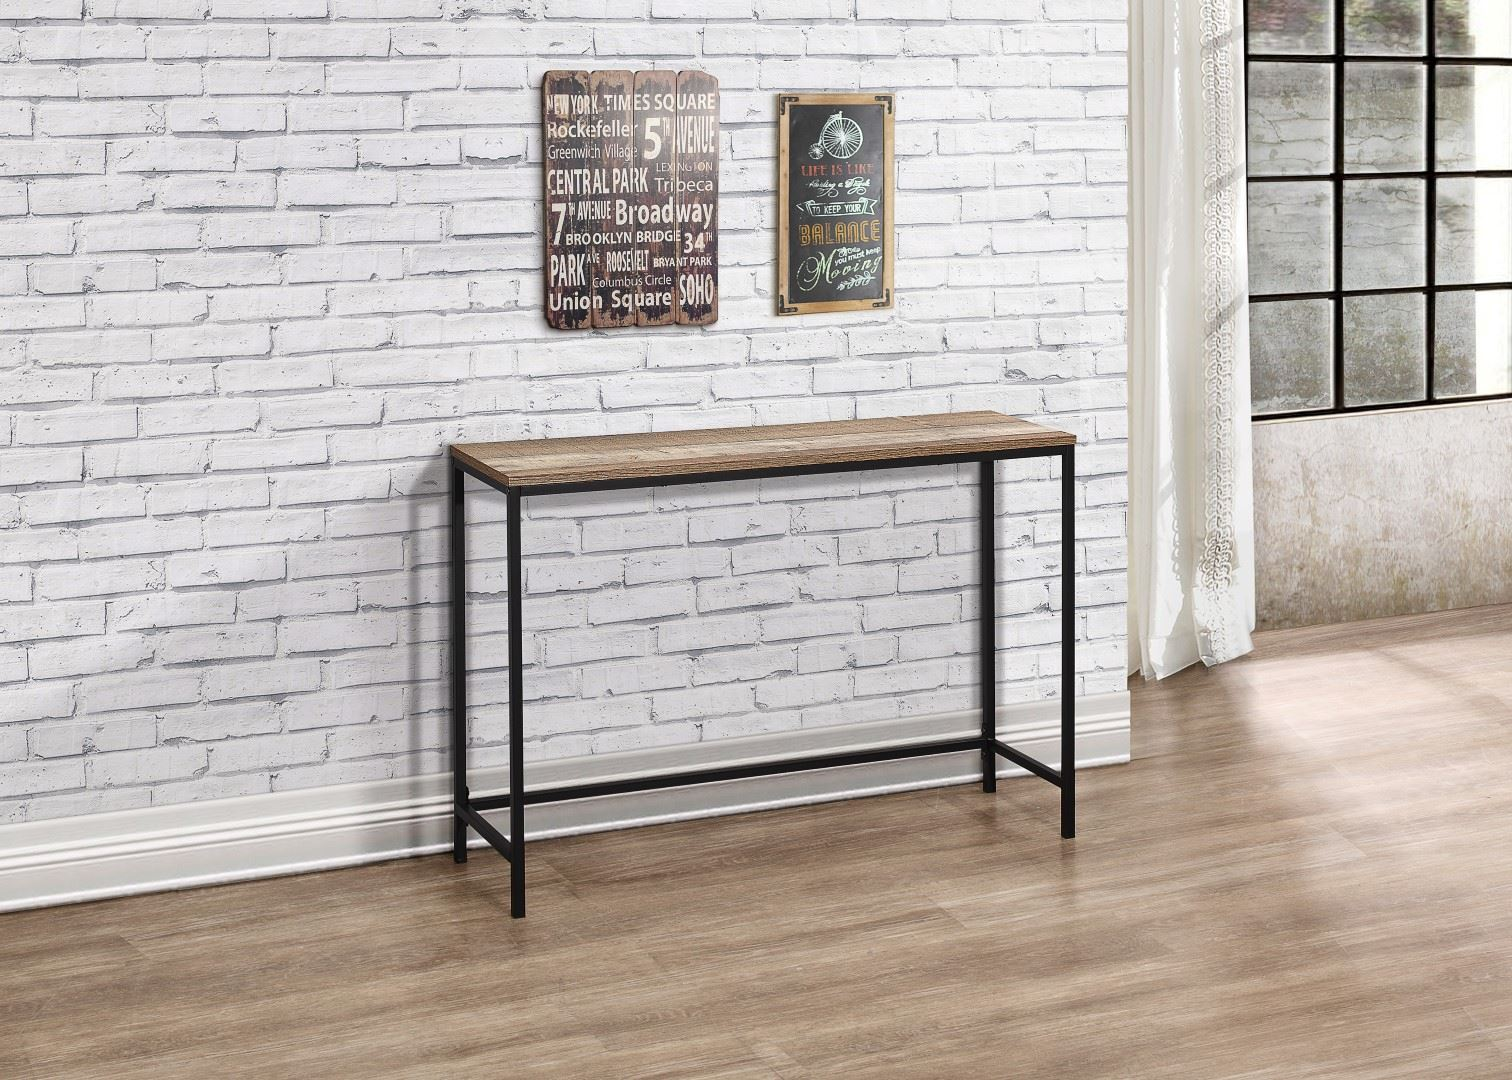 Birlea Urban Industrial Chic Console Hall Table Wood Black Metal Hallway